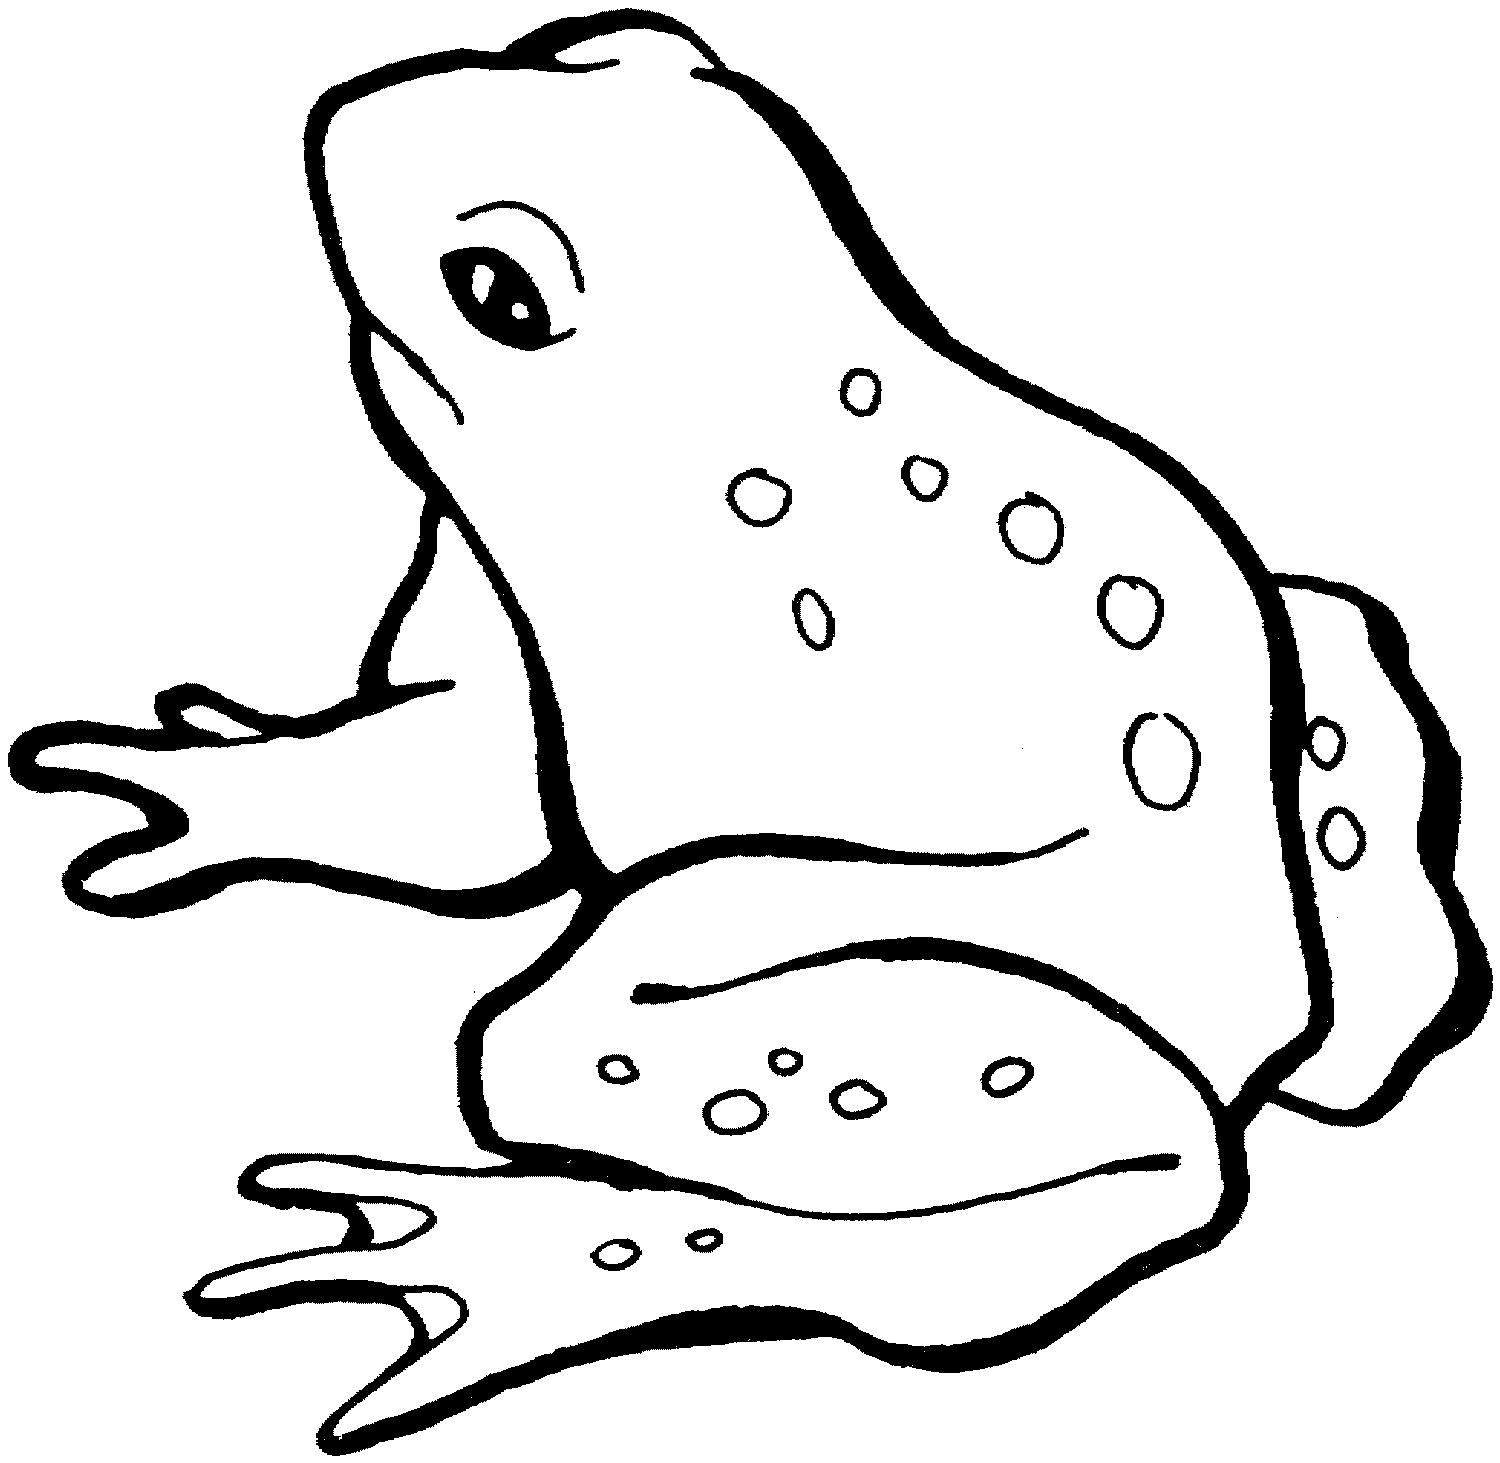 Frog clipart black and white. Unique design digital collection